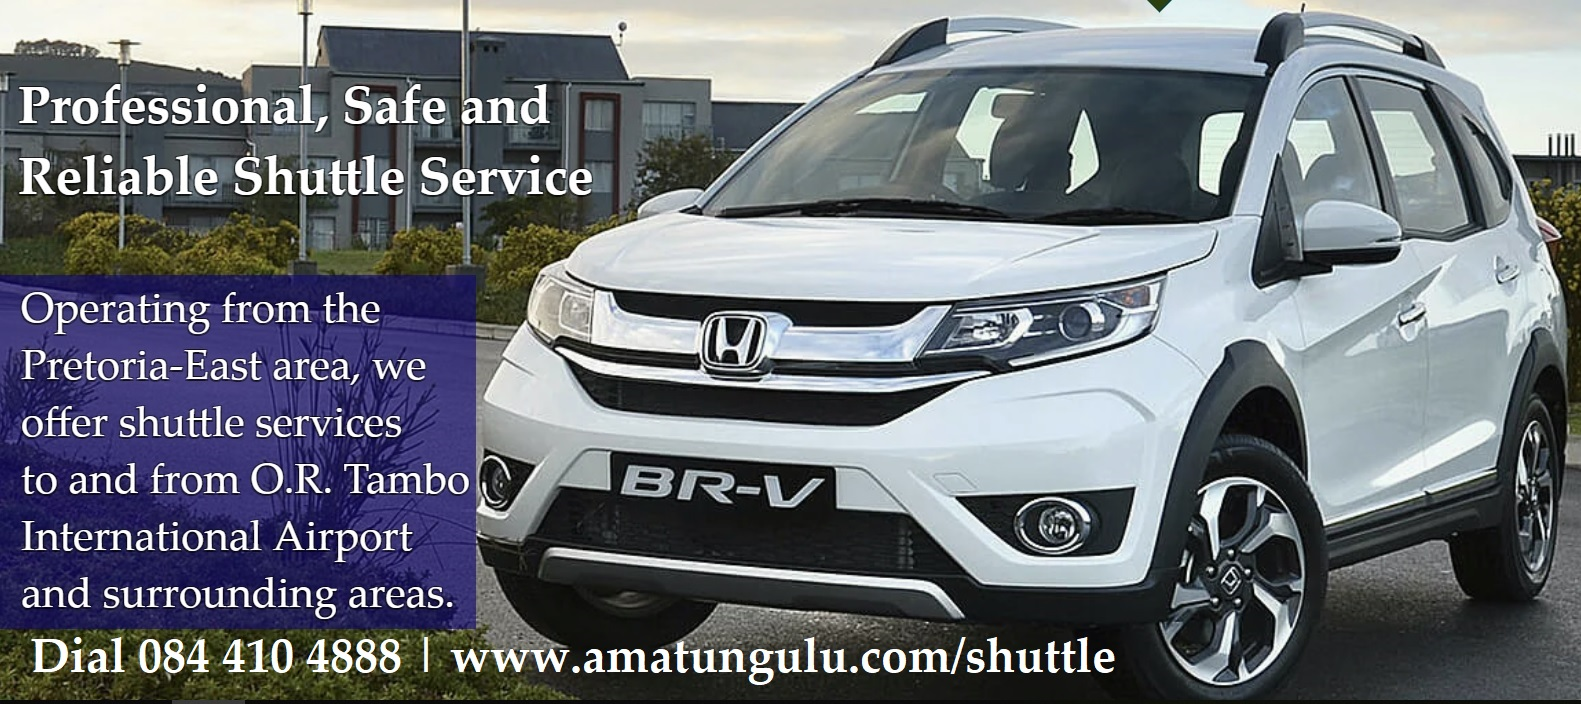 Professional, Safe and Reliable Shuttle Service